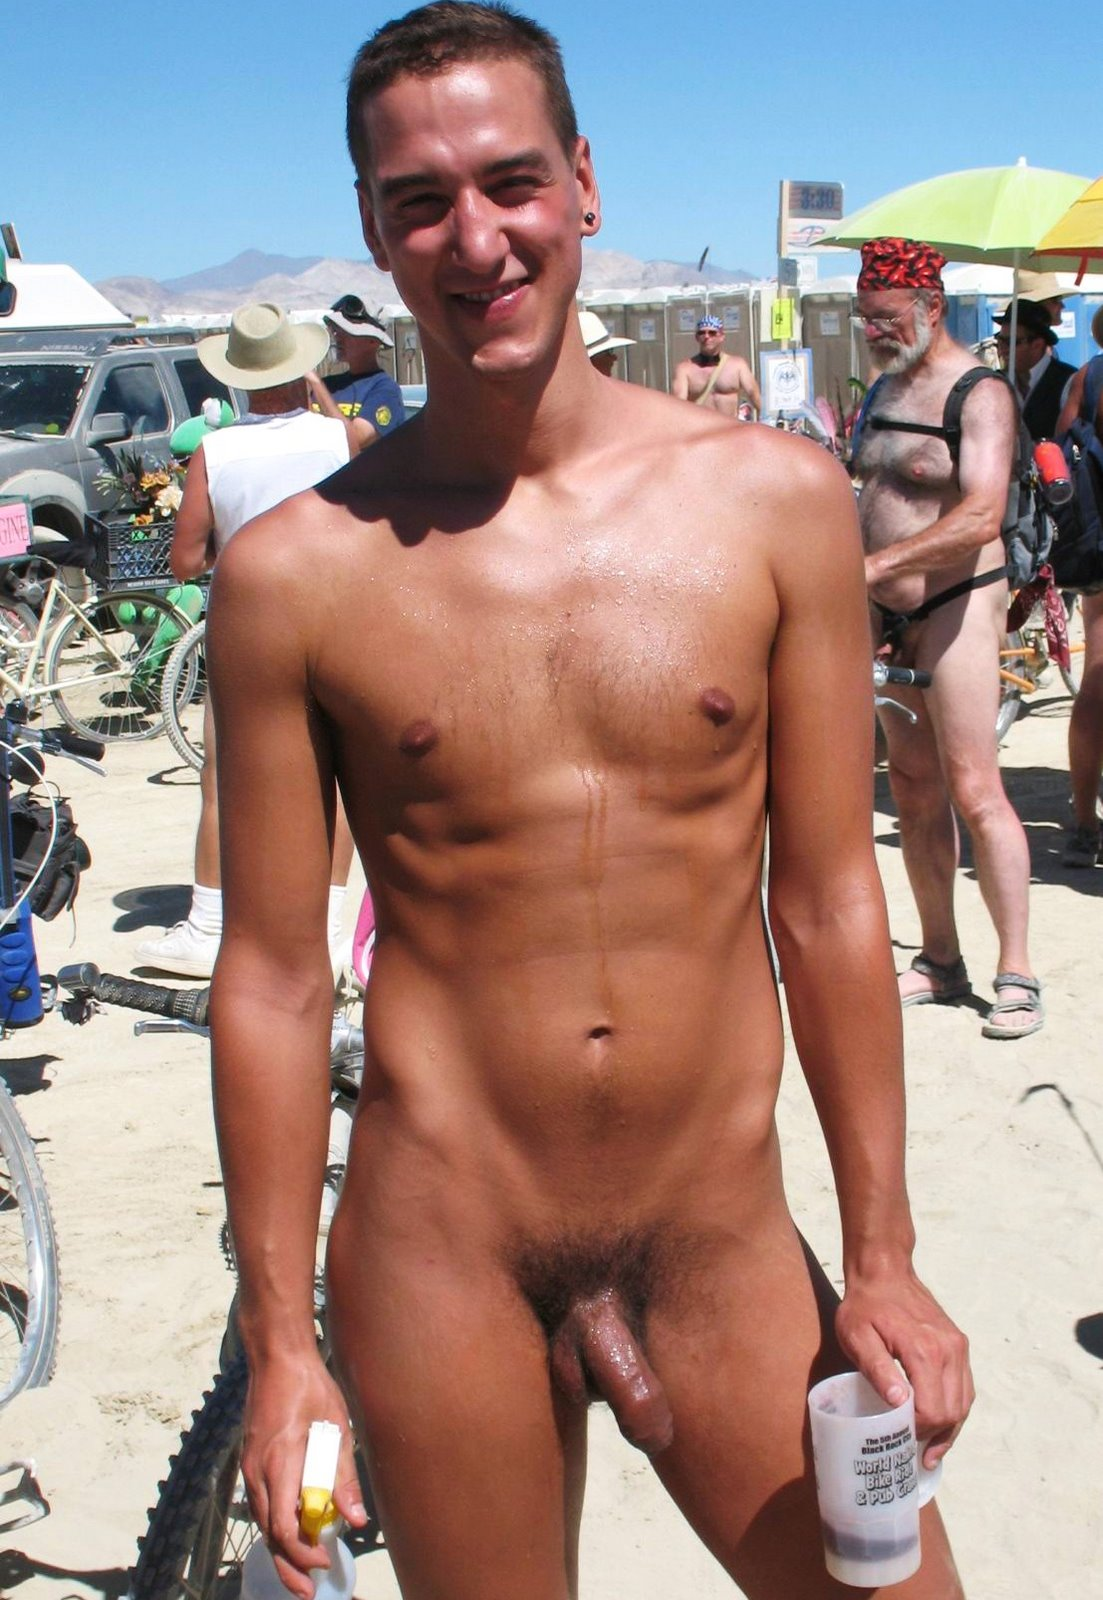 Male With Erection Nude Beach